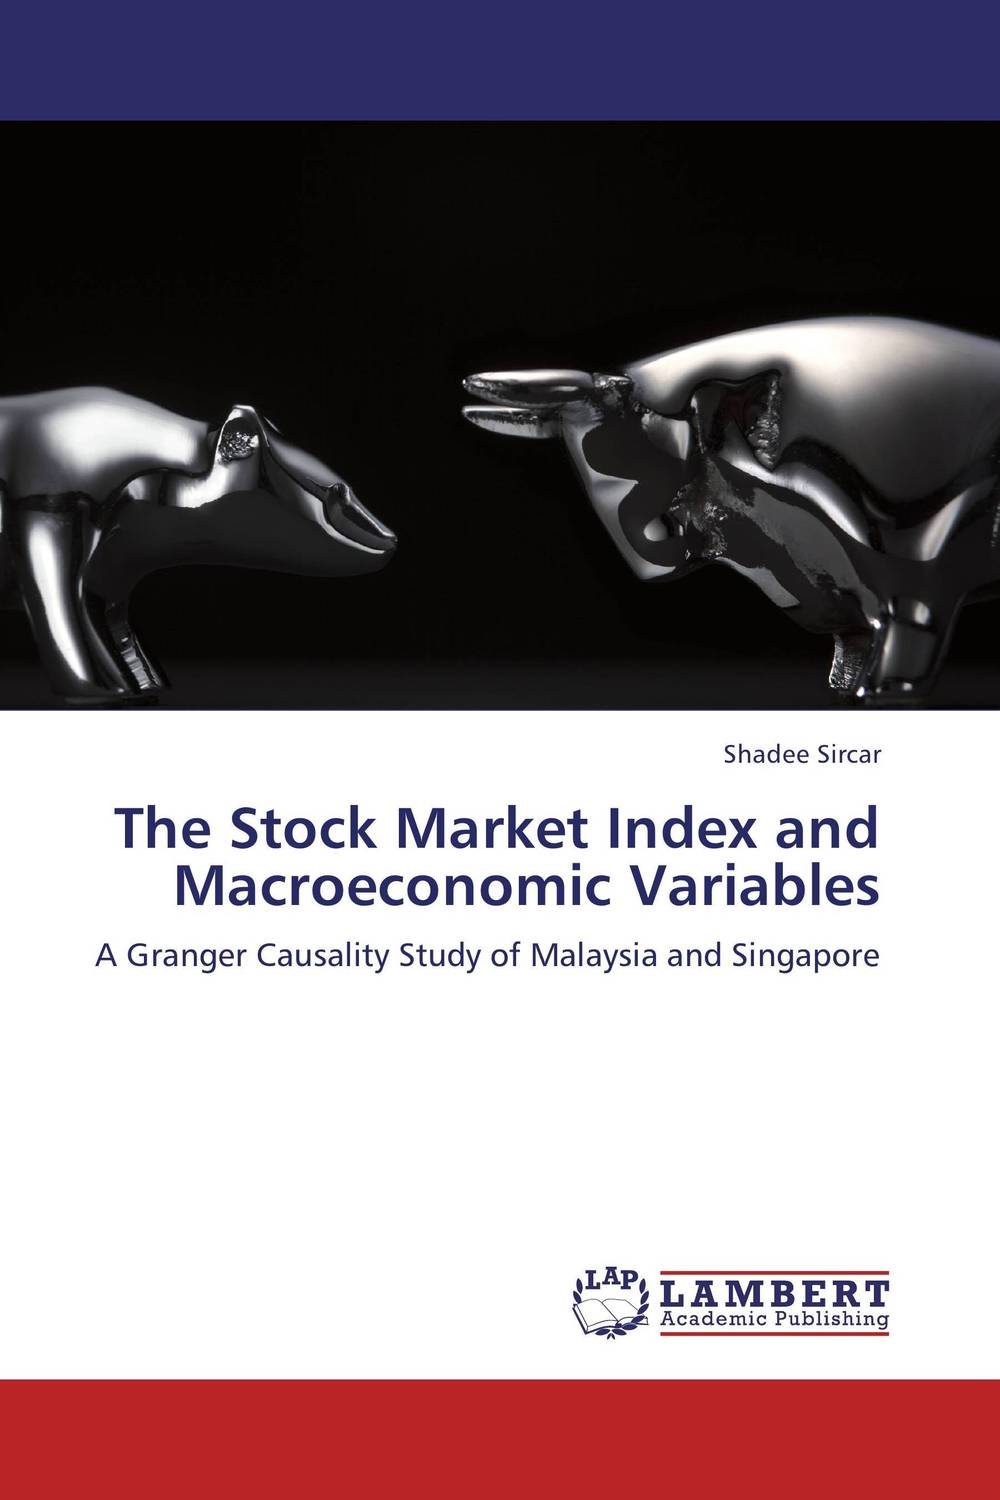 The Stock Market Index and Macroeconomic Variables